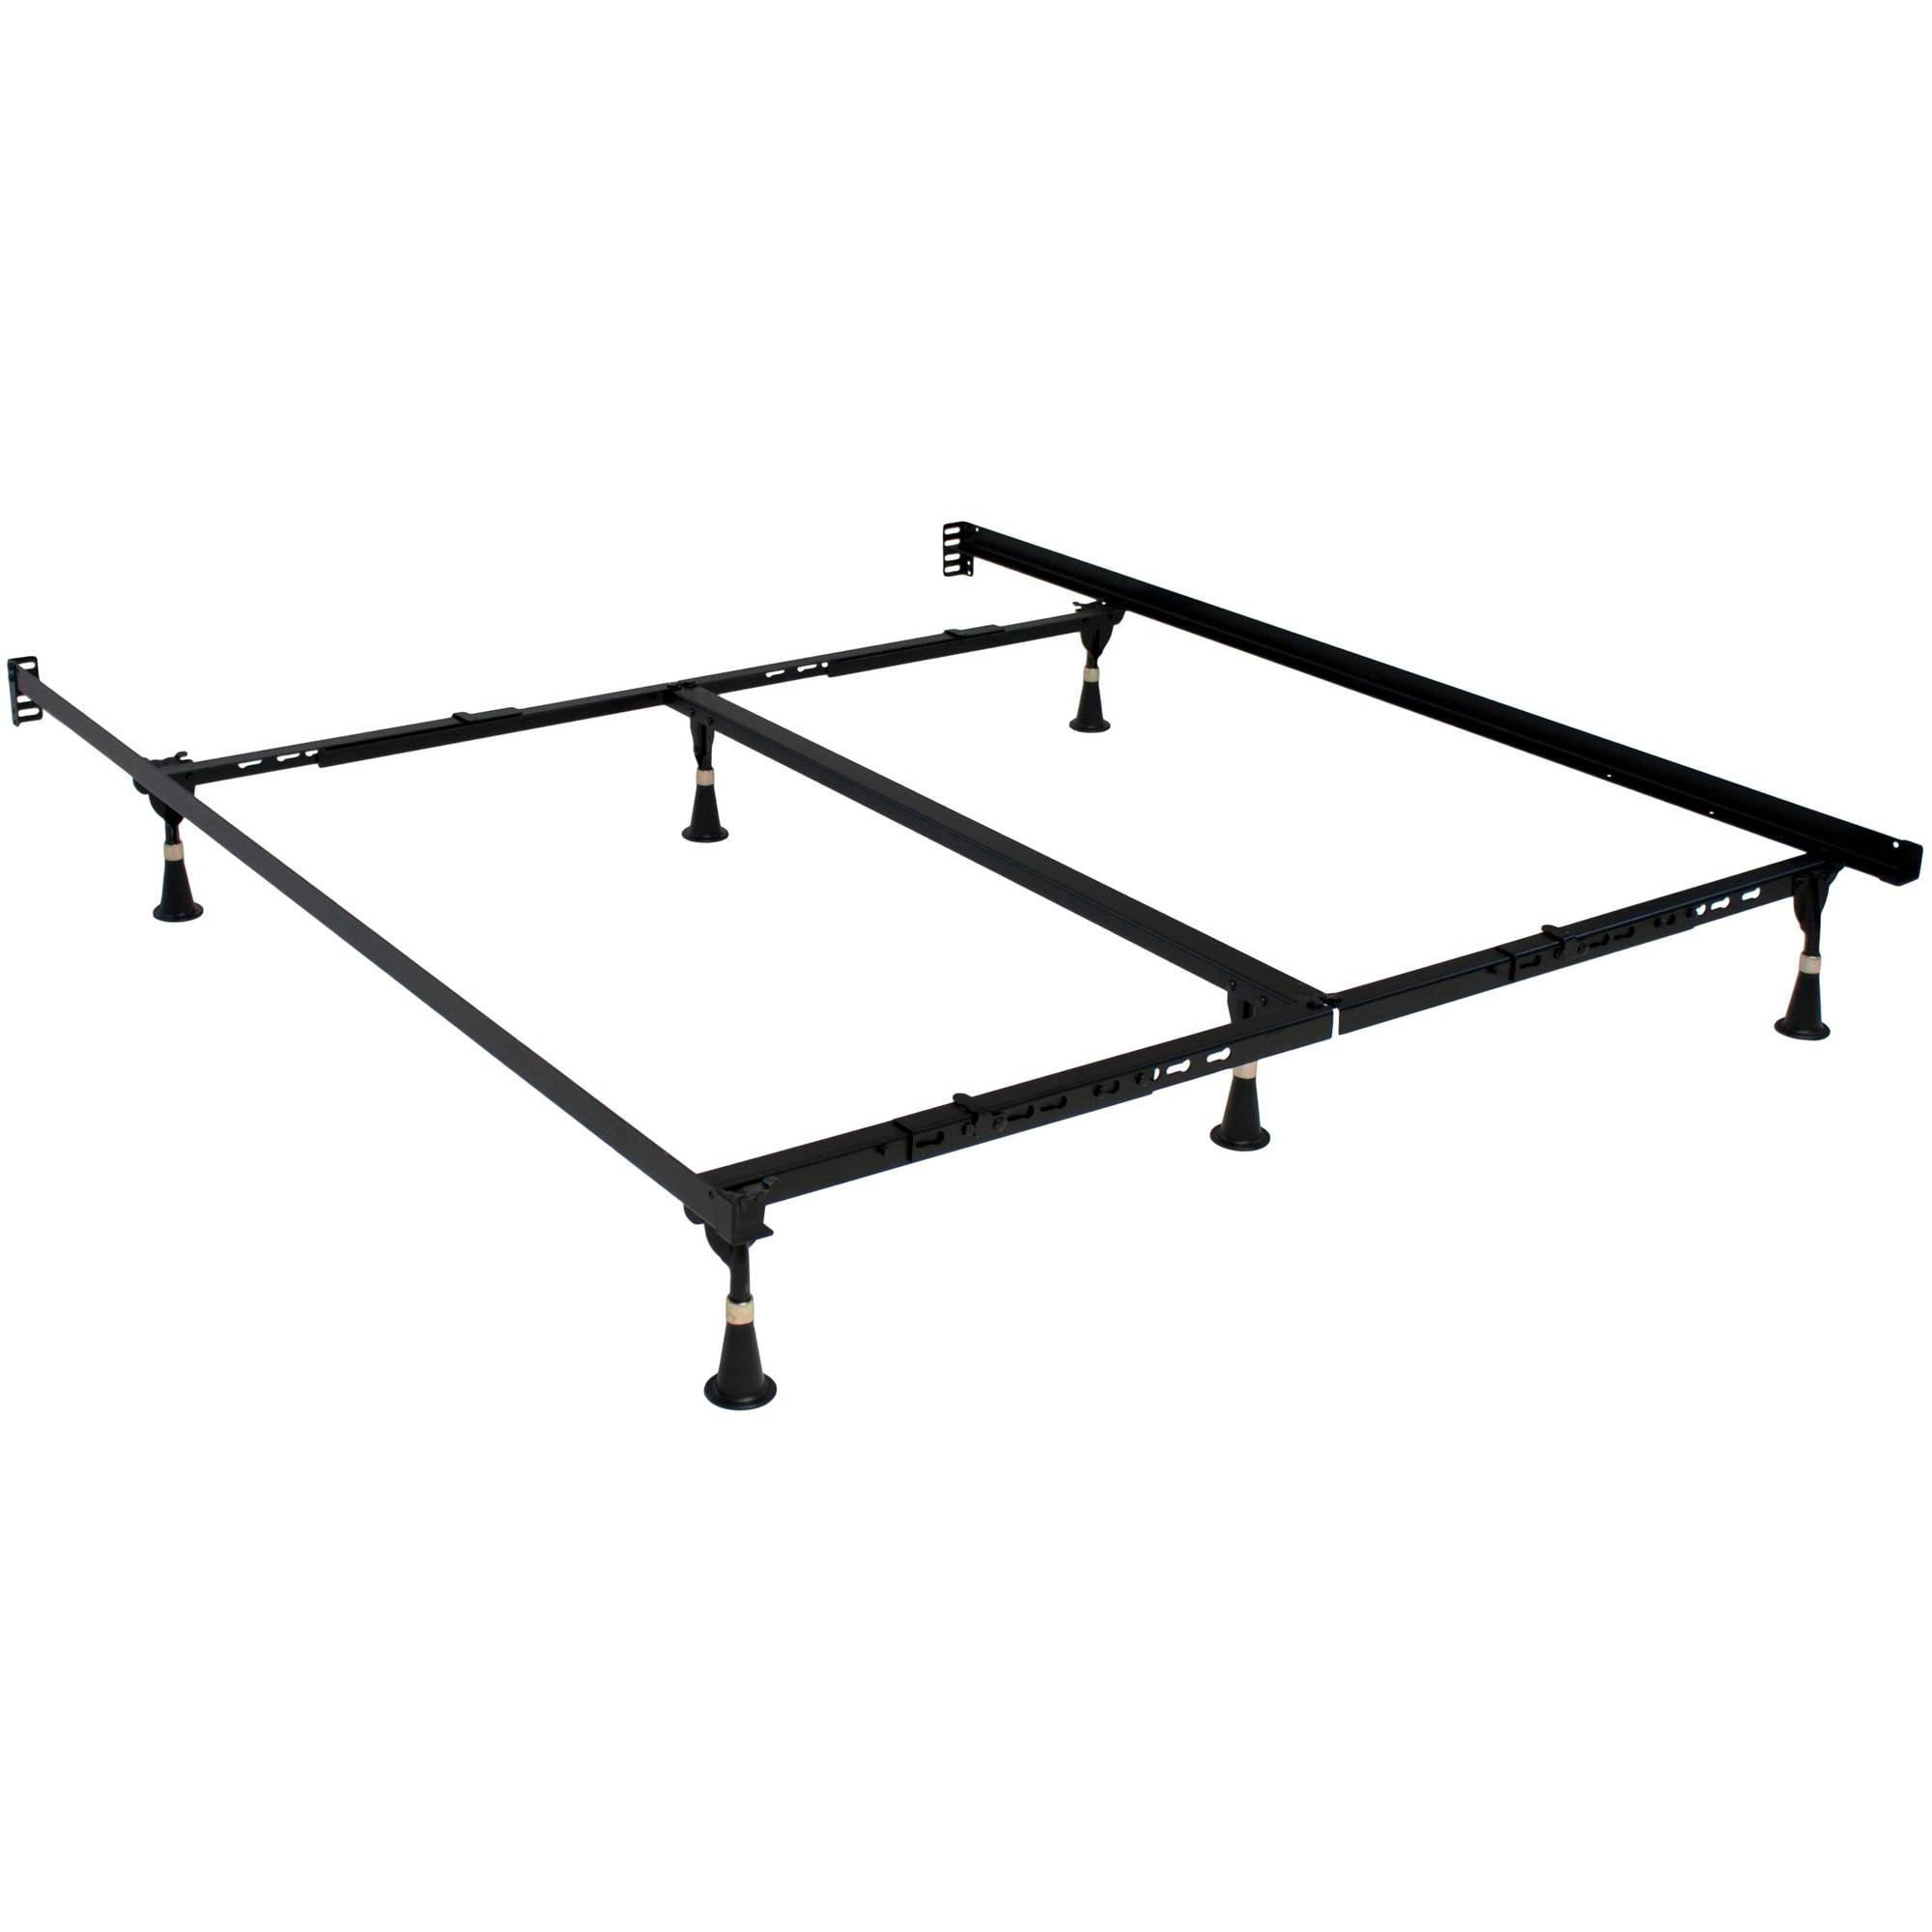 Beautyrest Premium Easy-to-Assemble Adjustable Bed Frame with High Carbon Steel All Sizes - Walmart.com  sc 1 st  Walmart & Beautyrest Premium Easy-to-Assemble Adjustable Bed Frame with High ... islam-shia.org